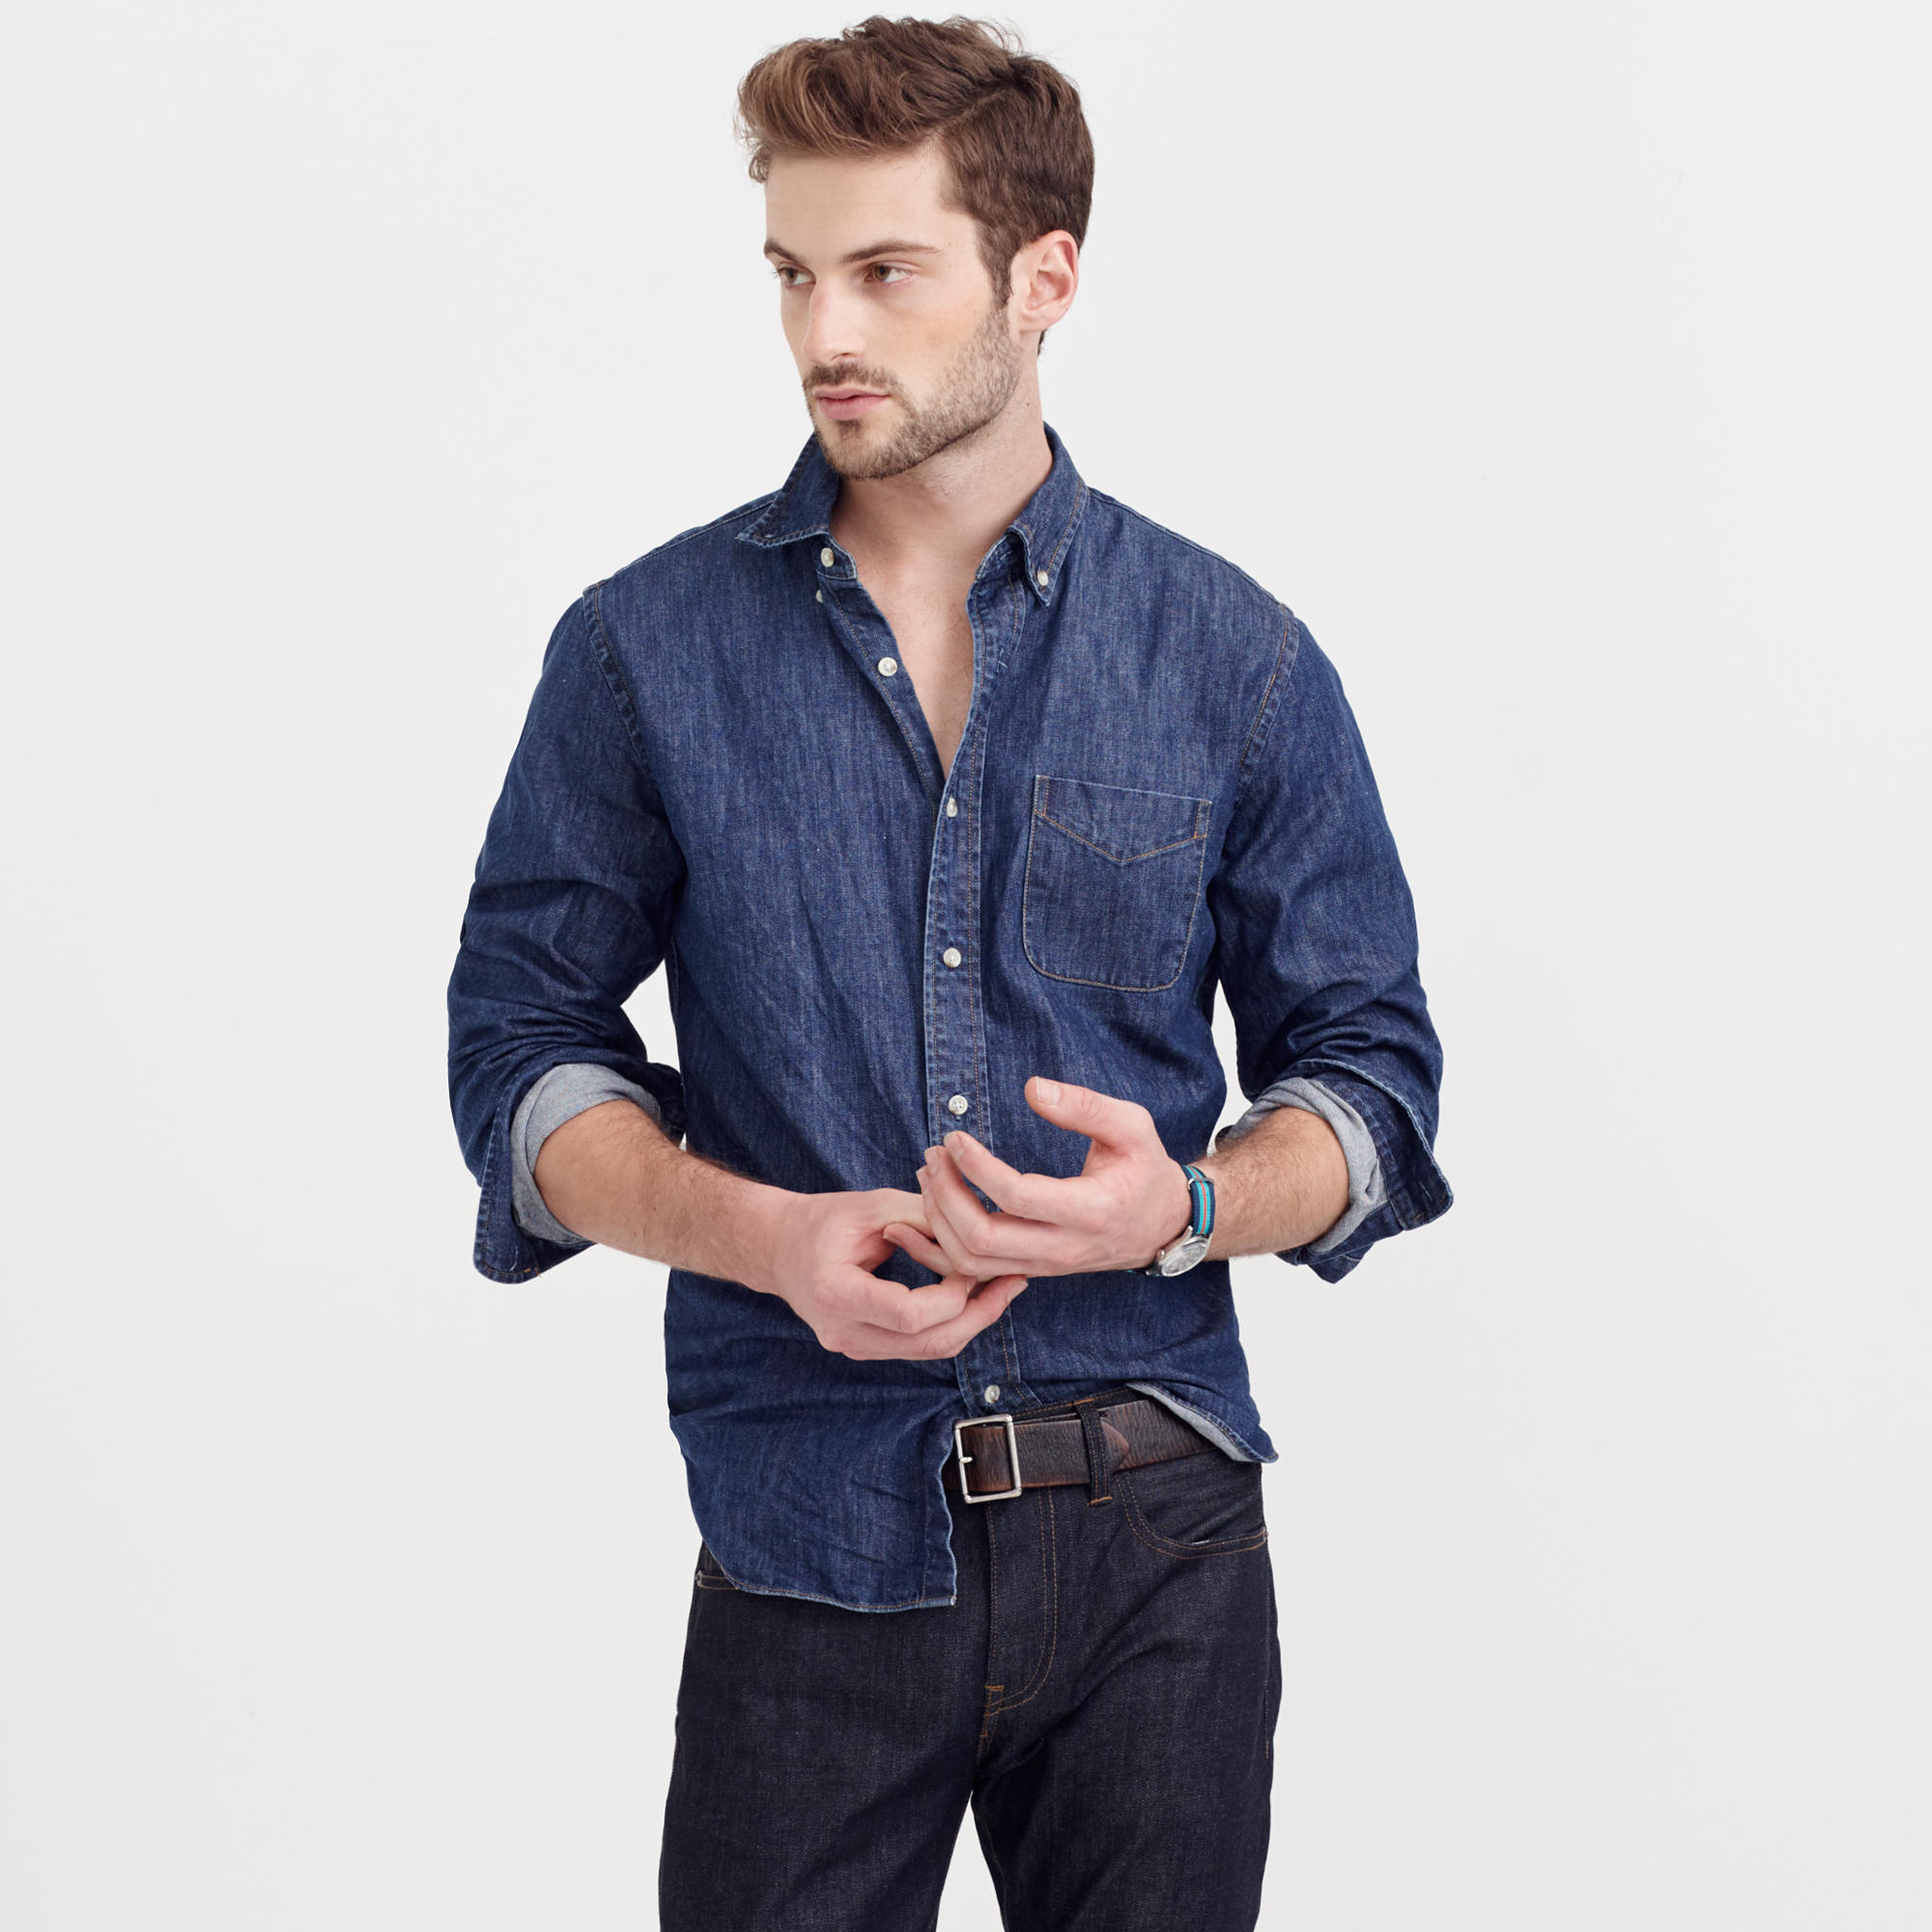 Slim Midweight Denim Shirt : Men's Shirts | J.Crew